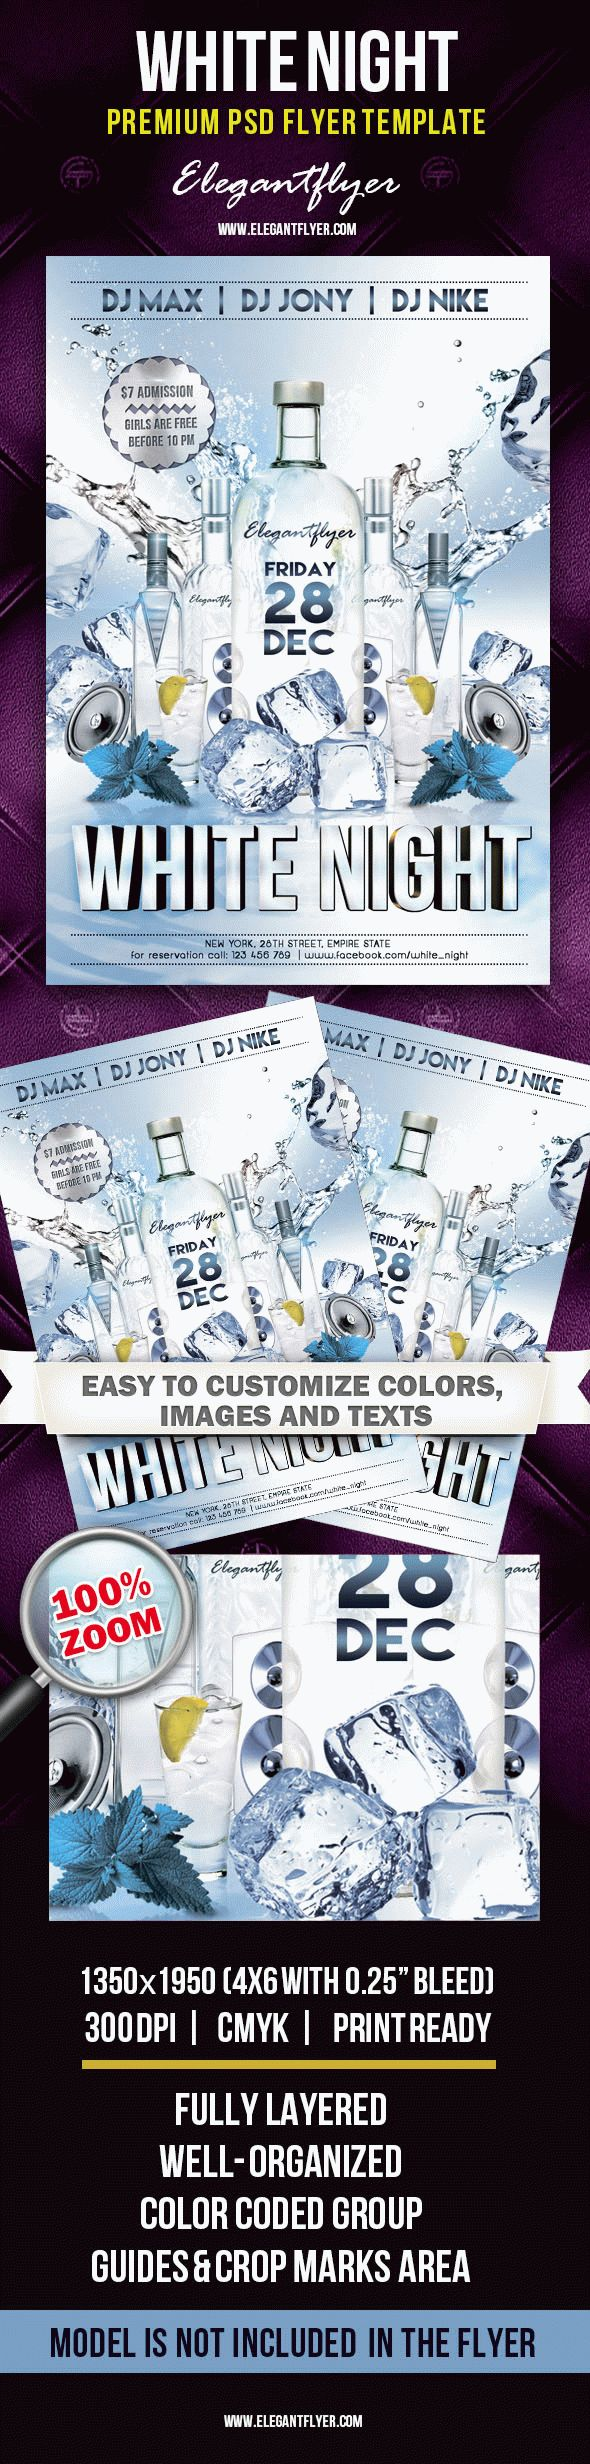 White Night – Premium Club flyer PSD Template